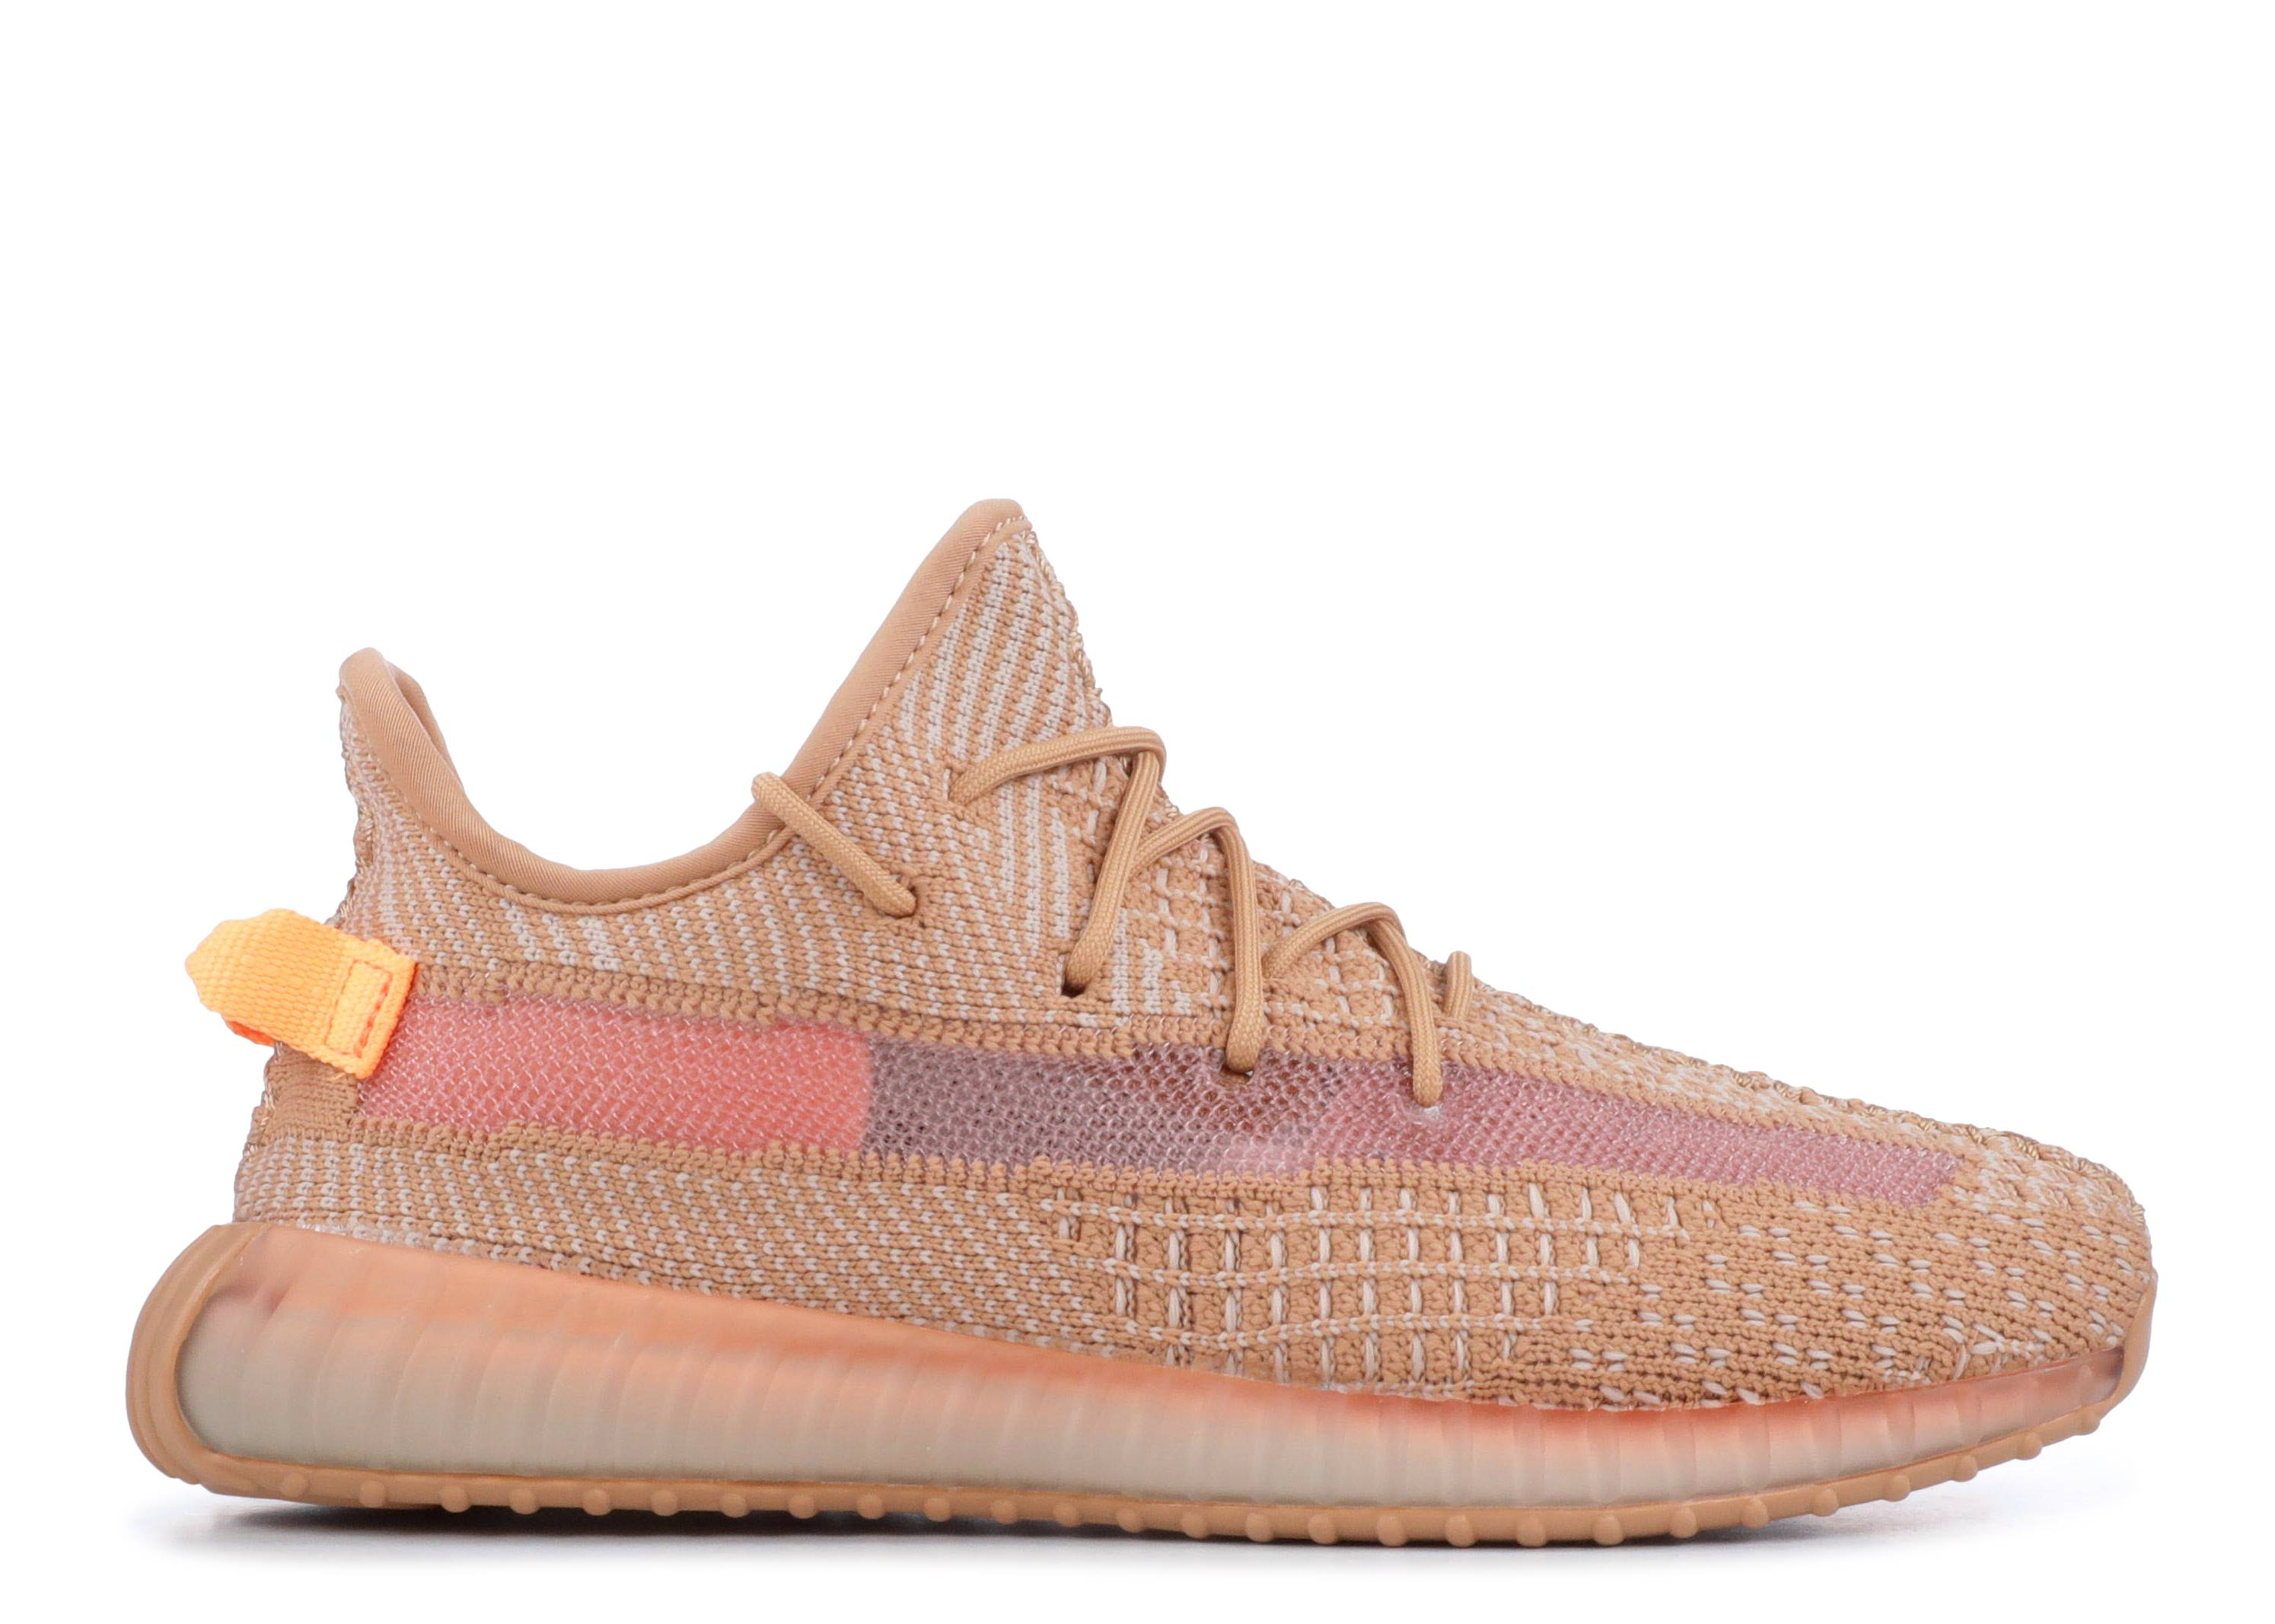 best website 99e2b c6ec8 Adidas Yeezy Shoes for Men, Women & Infants | Flight Club